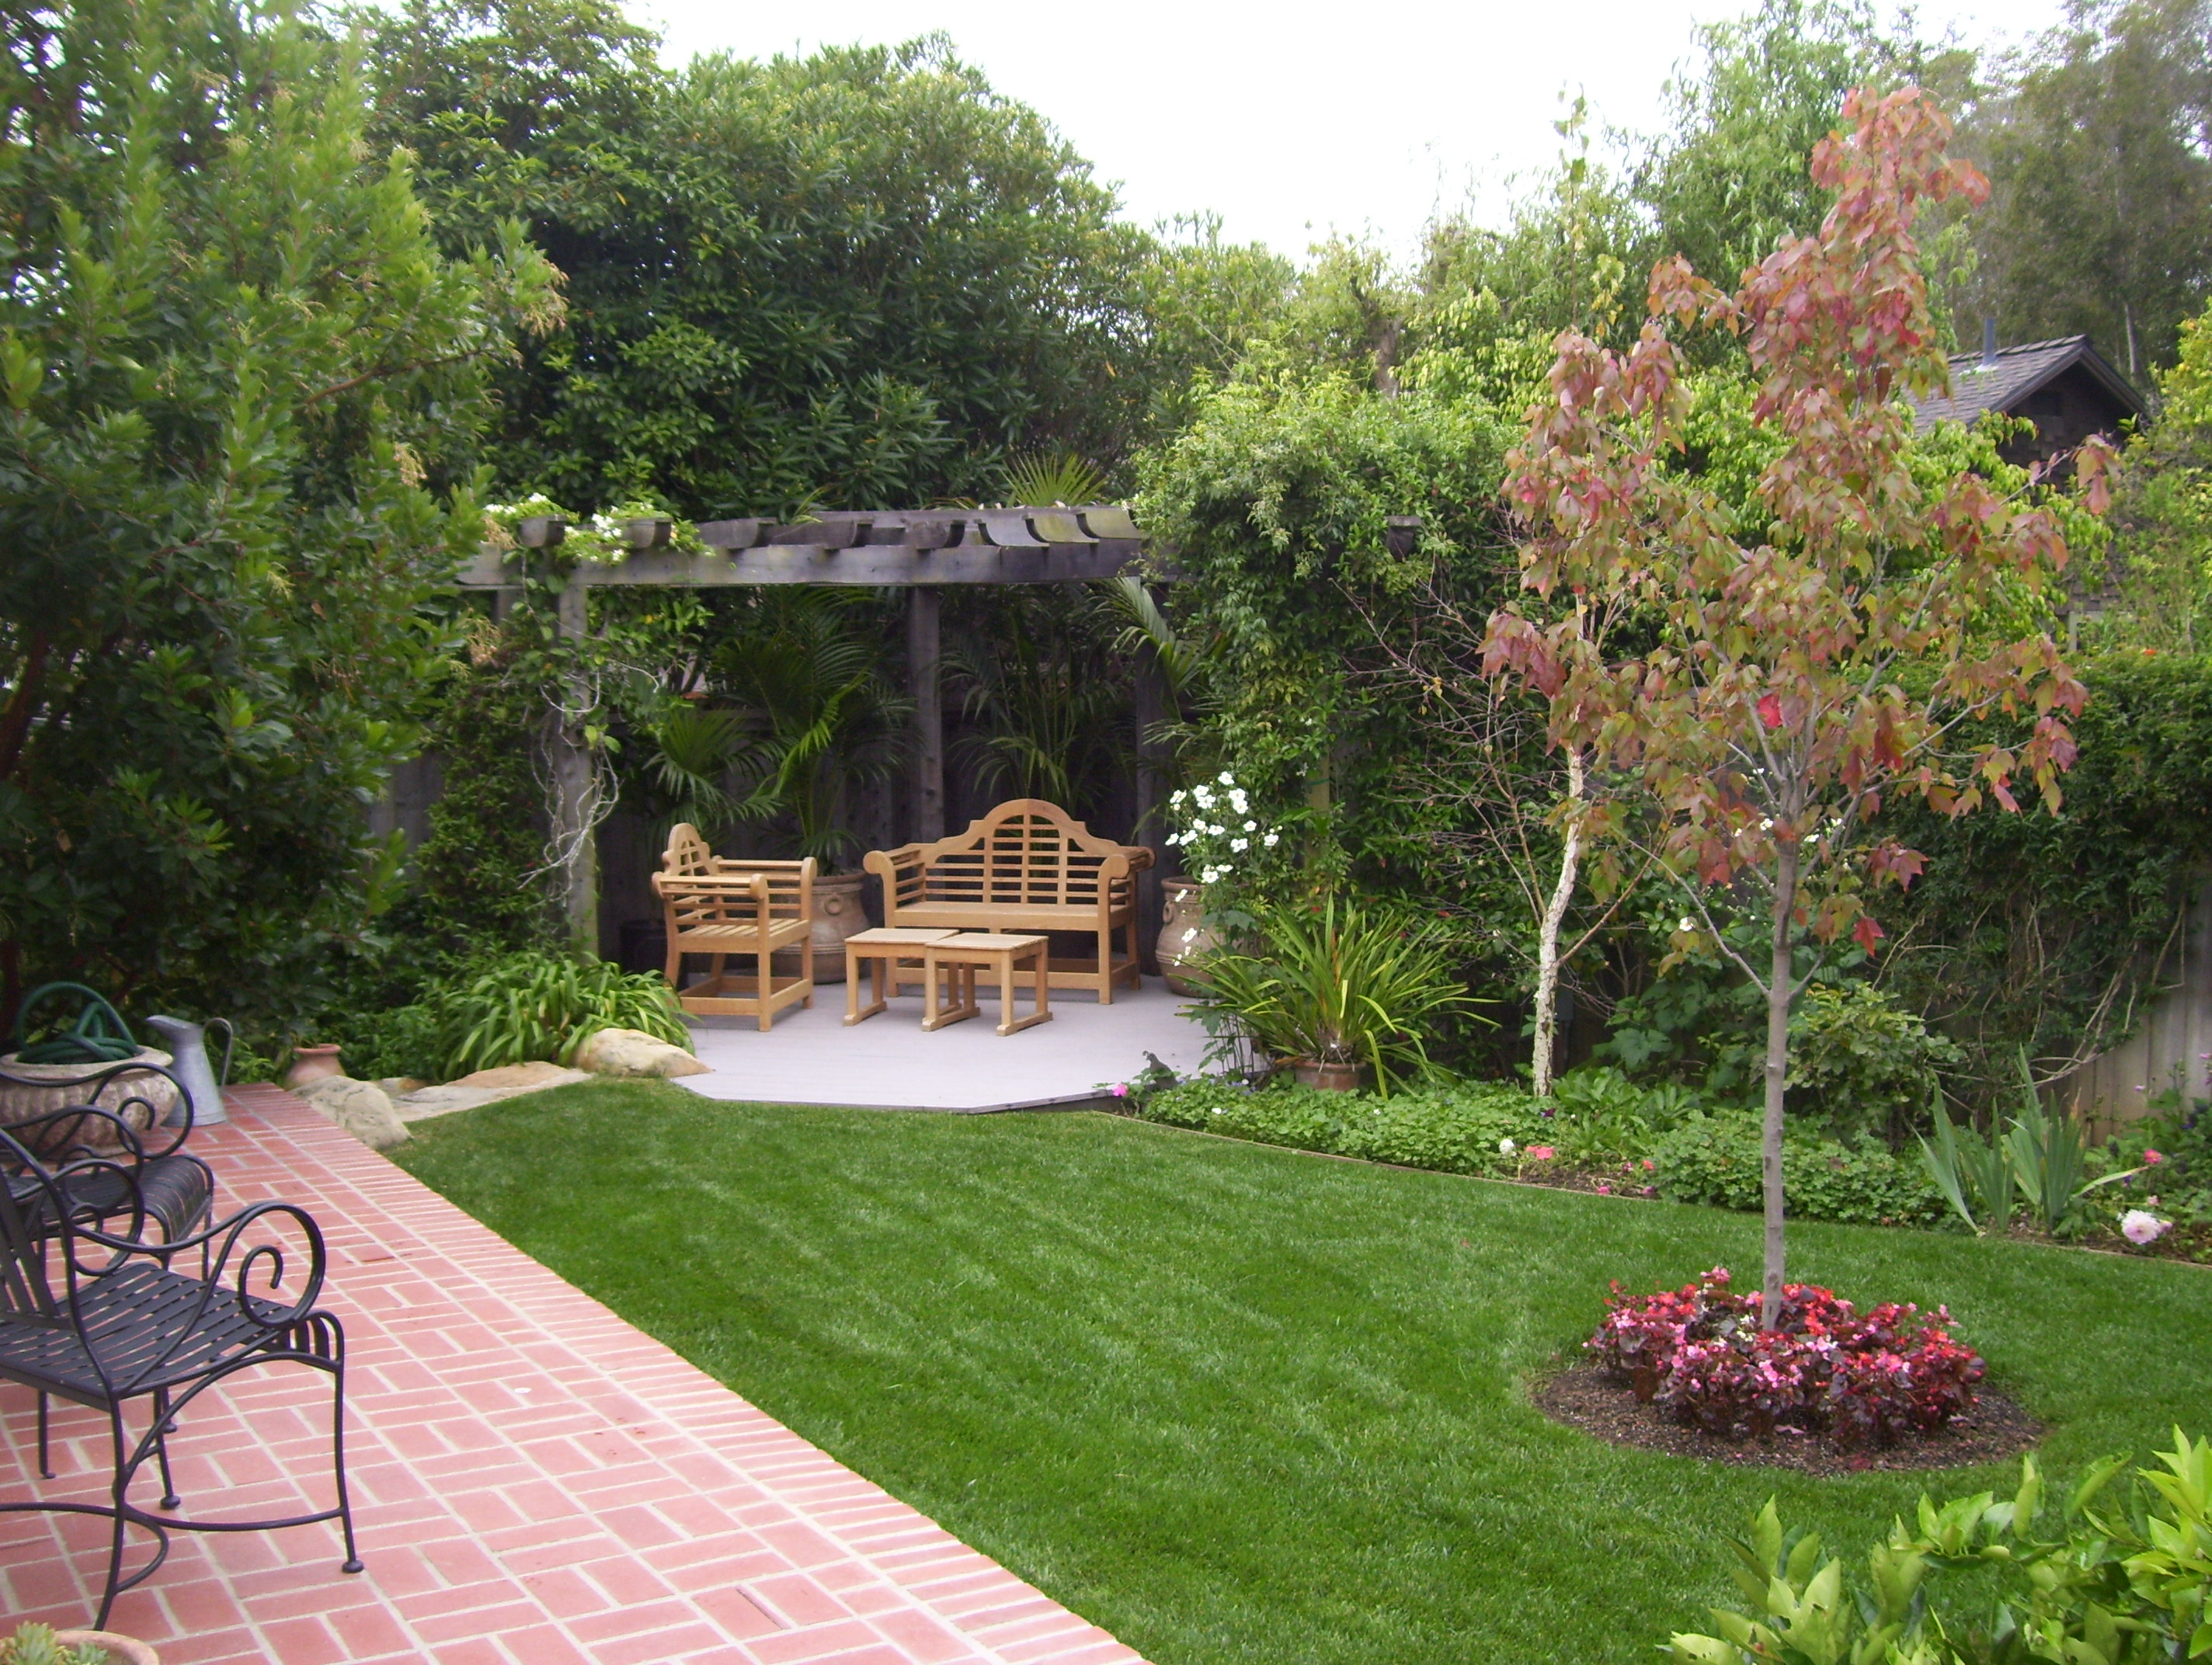 Backyard landscaping ideas santa barbara down to earth for Back yard garden designs